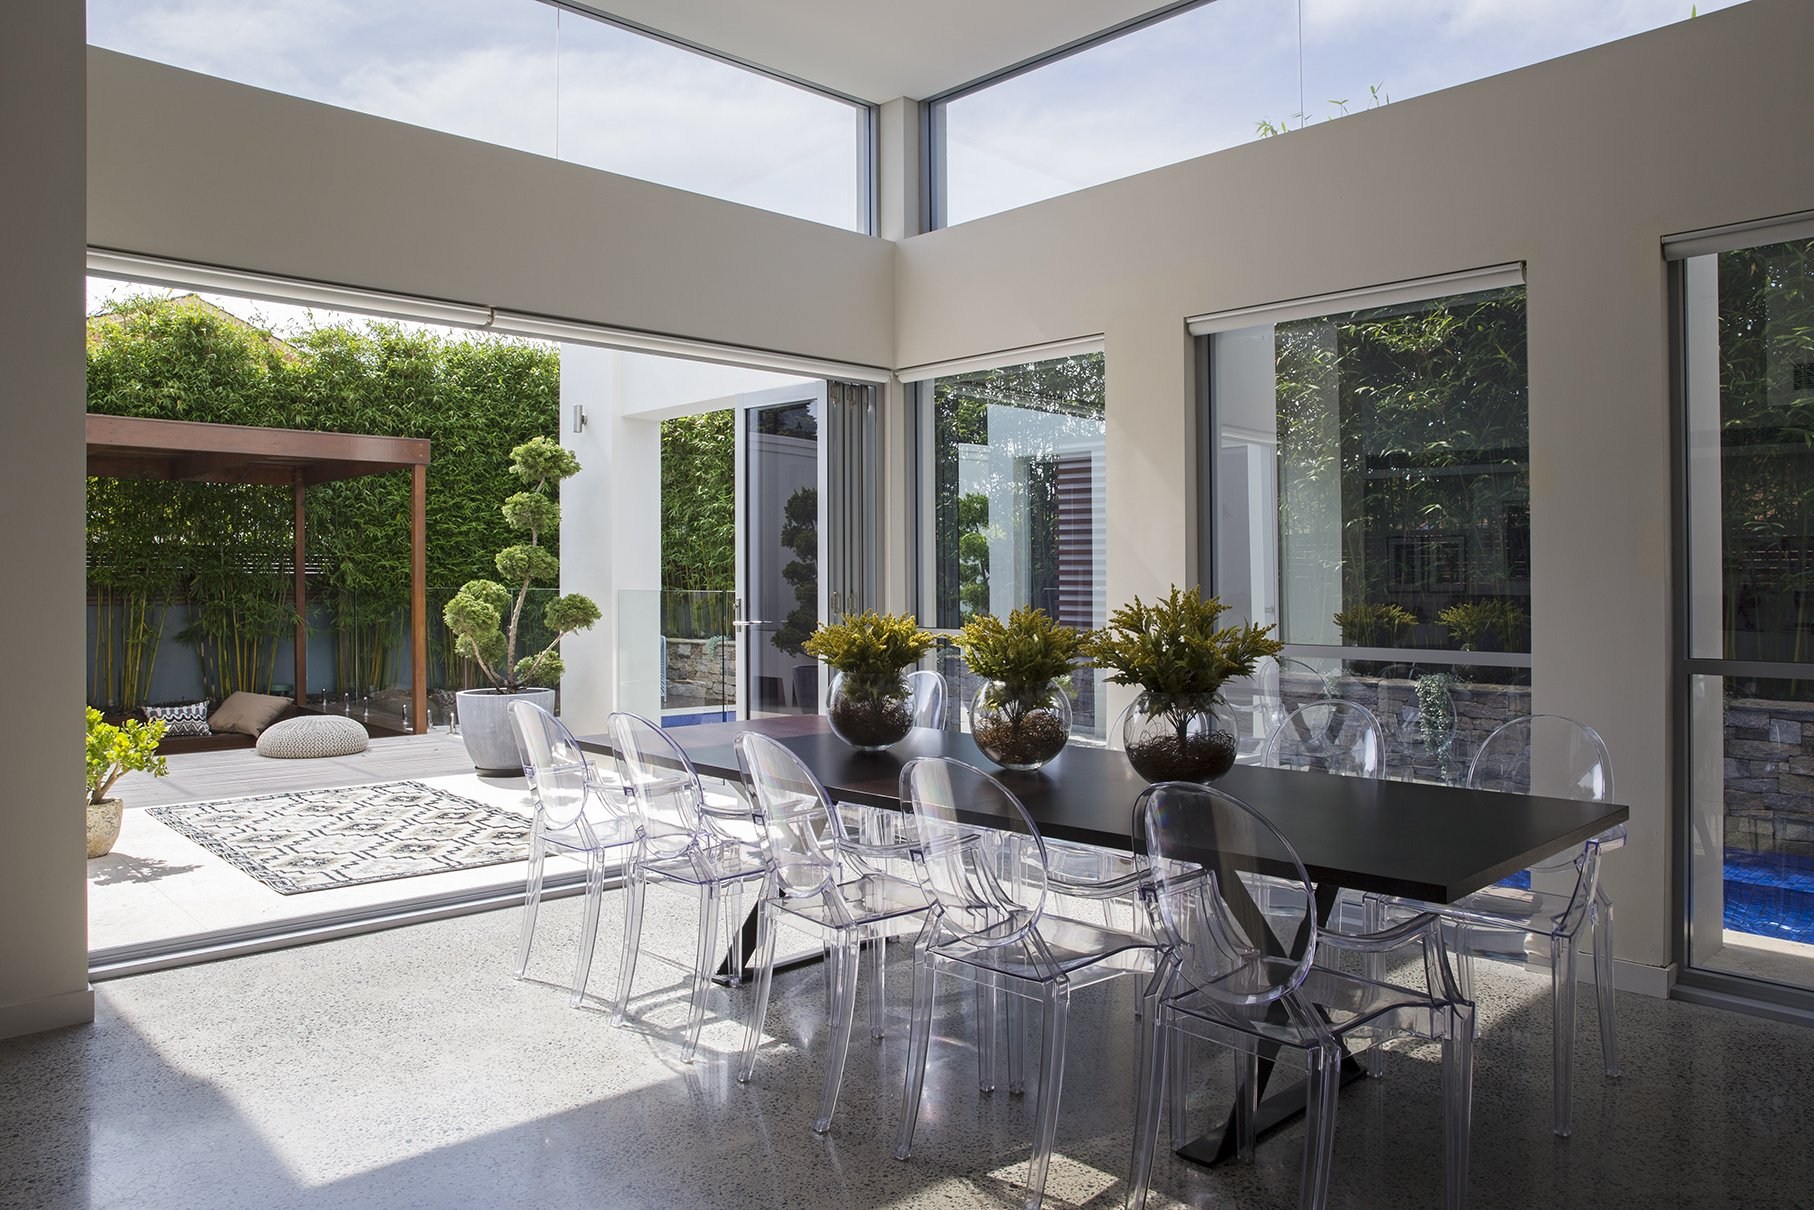 Open living space with a large dining table and clear chairs